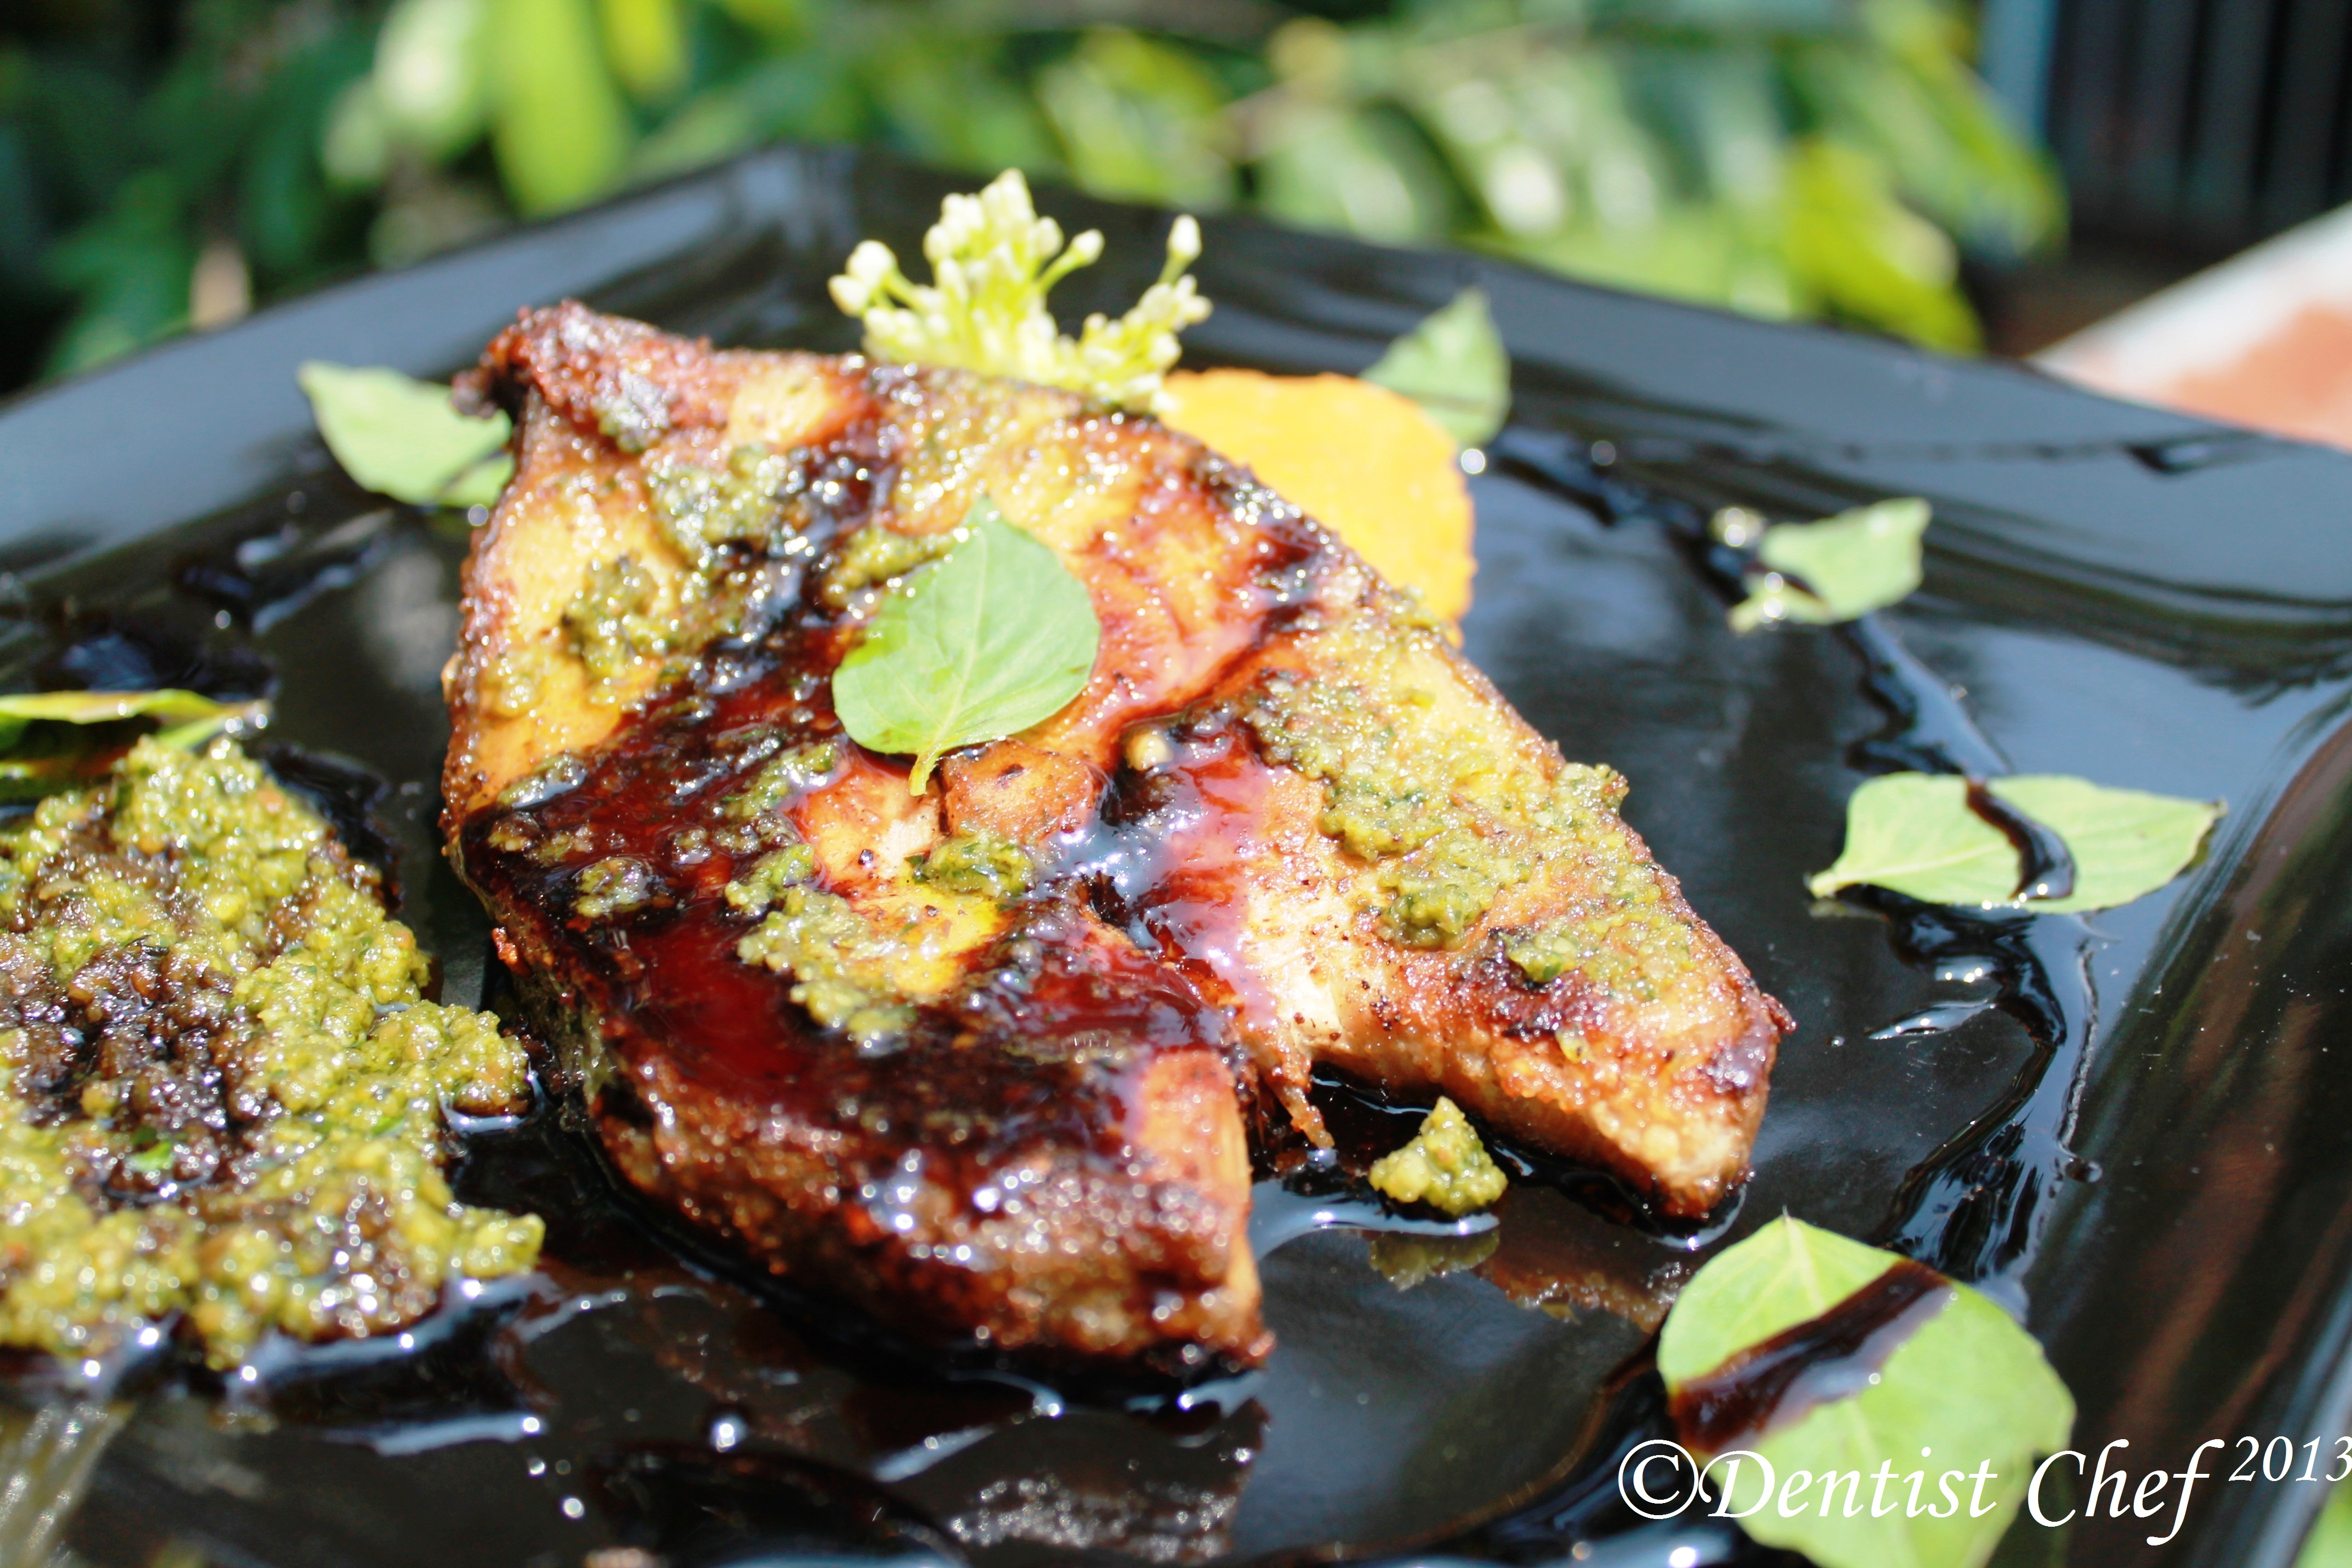 Pan fried fish with mashed sweet potato pesto sauce and for Fish steak recipe